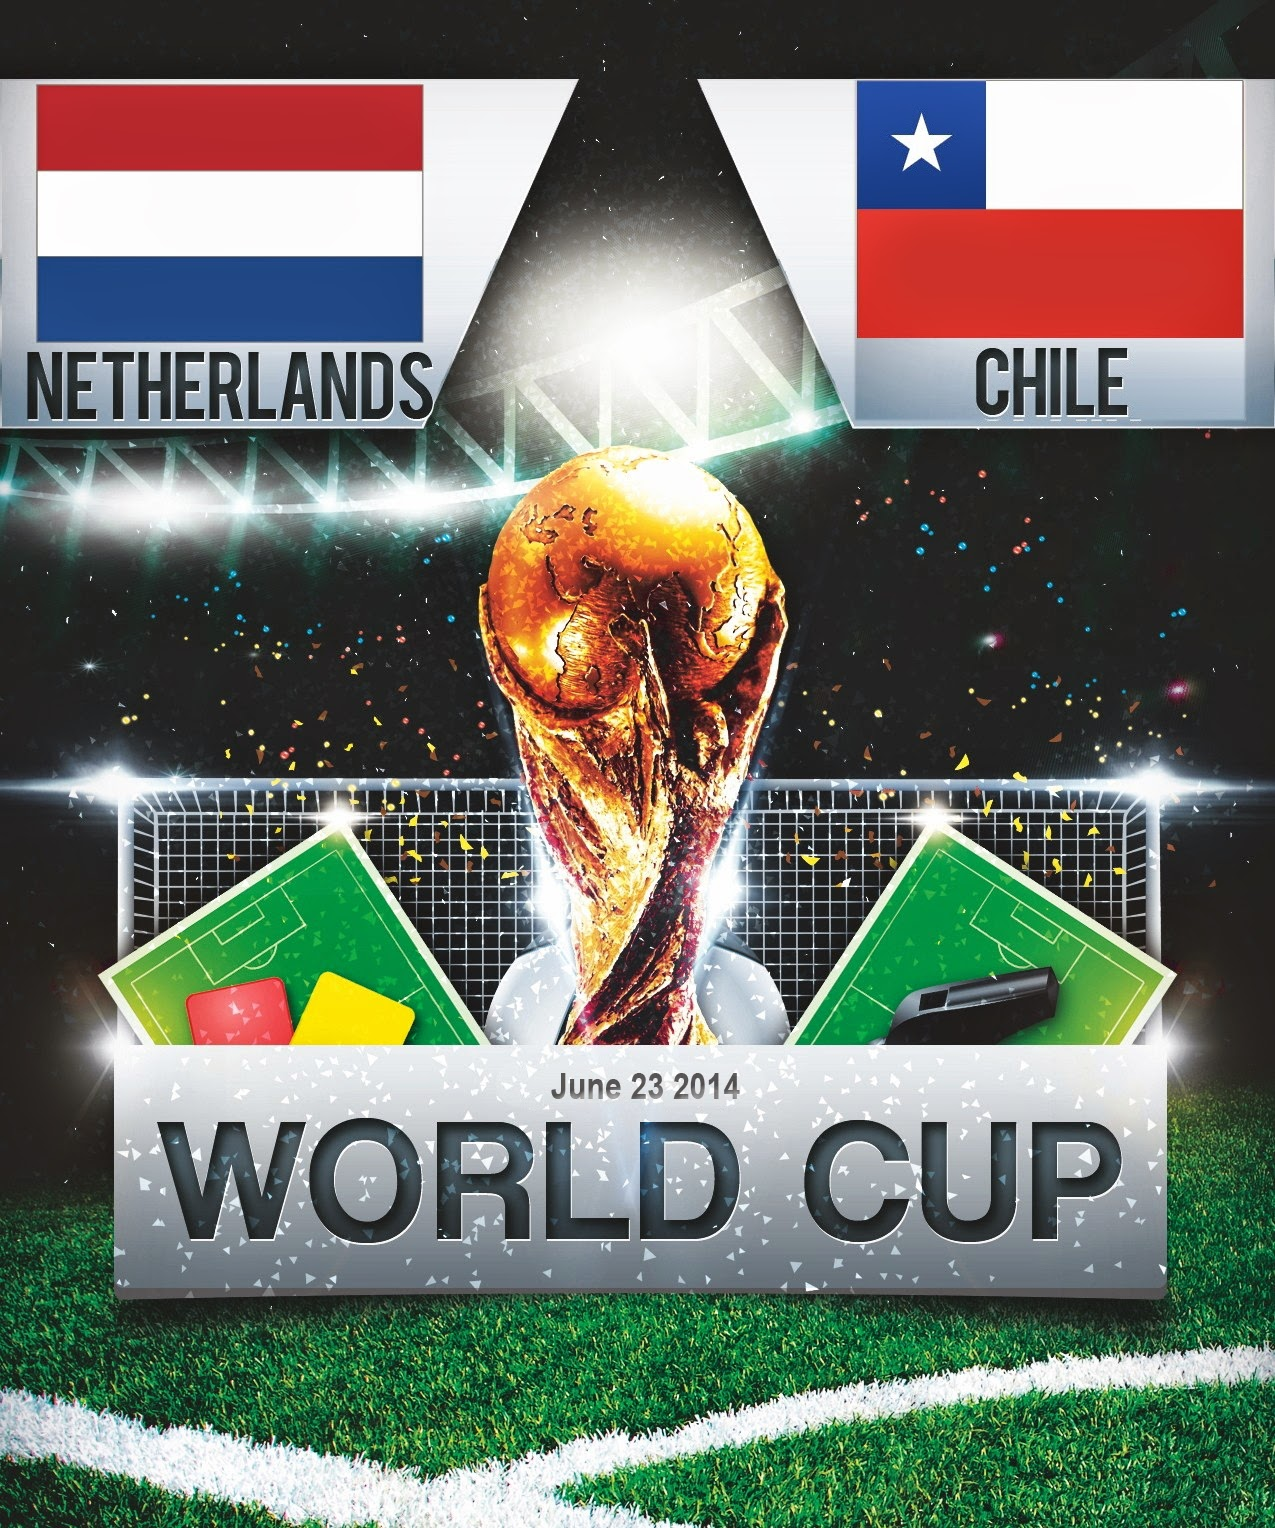 FIFA World Cup 2014 - Netherlands Vs Chile